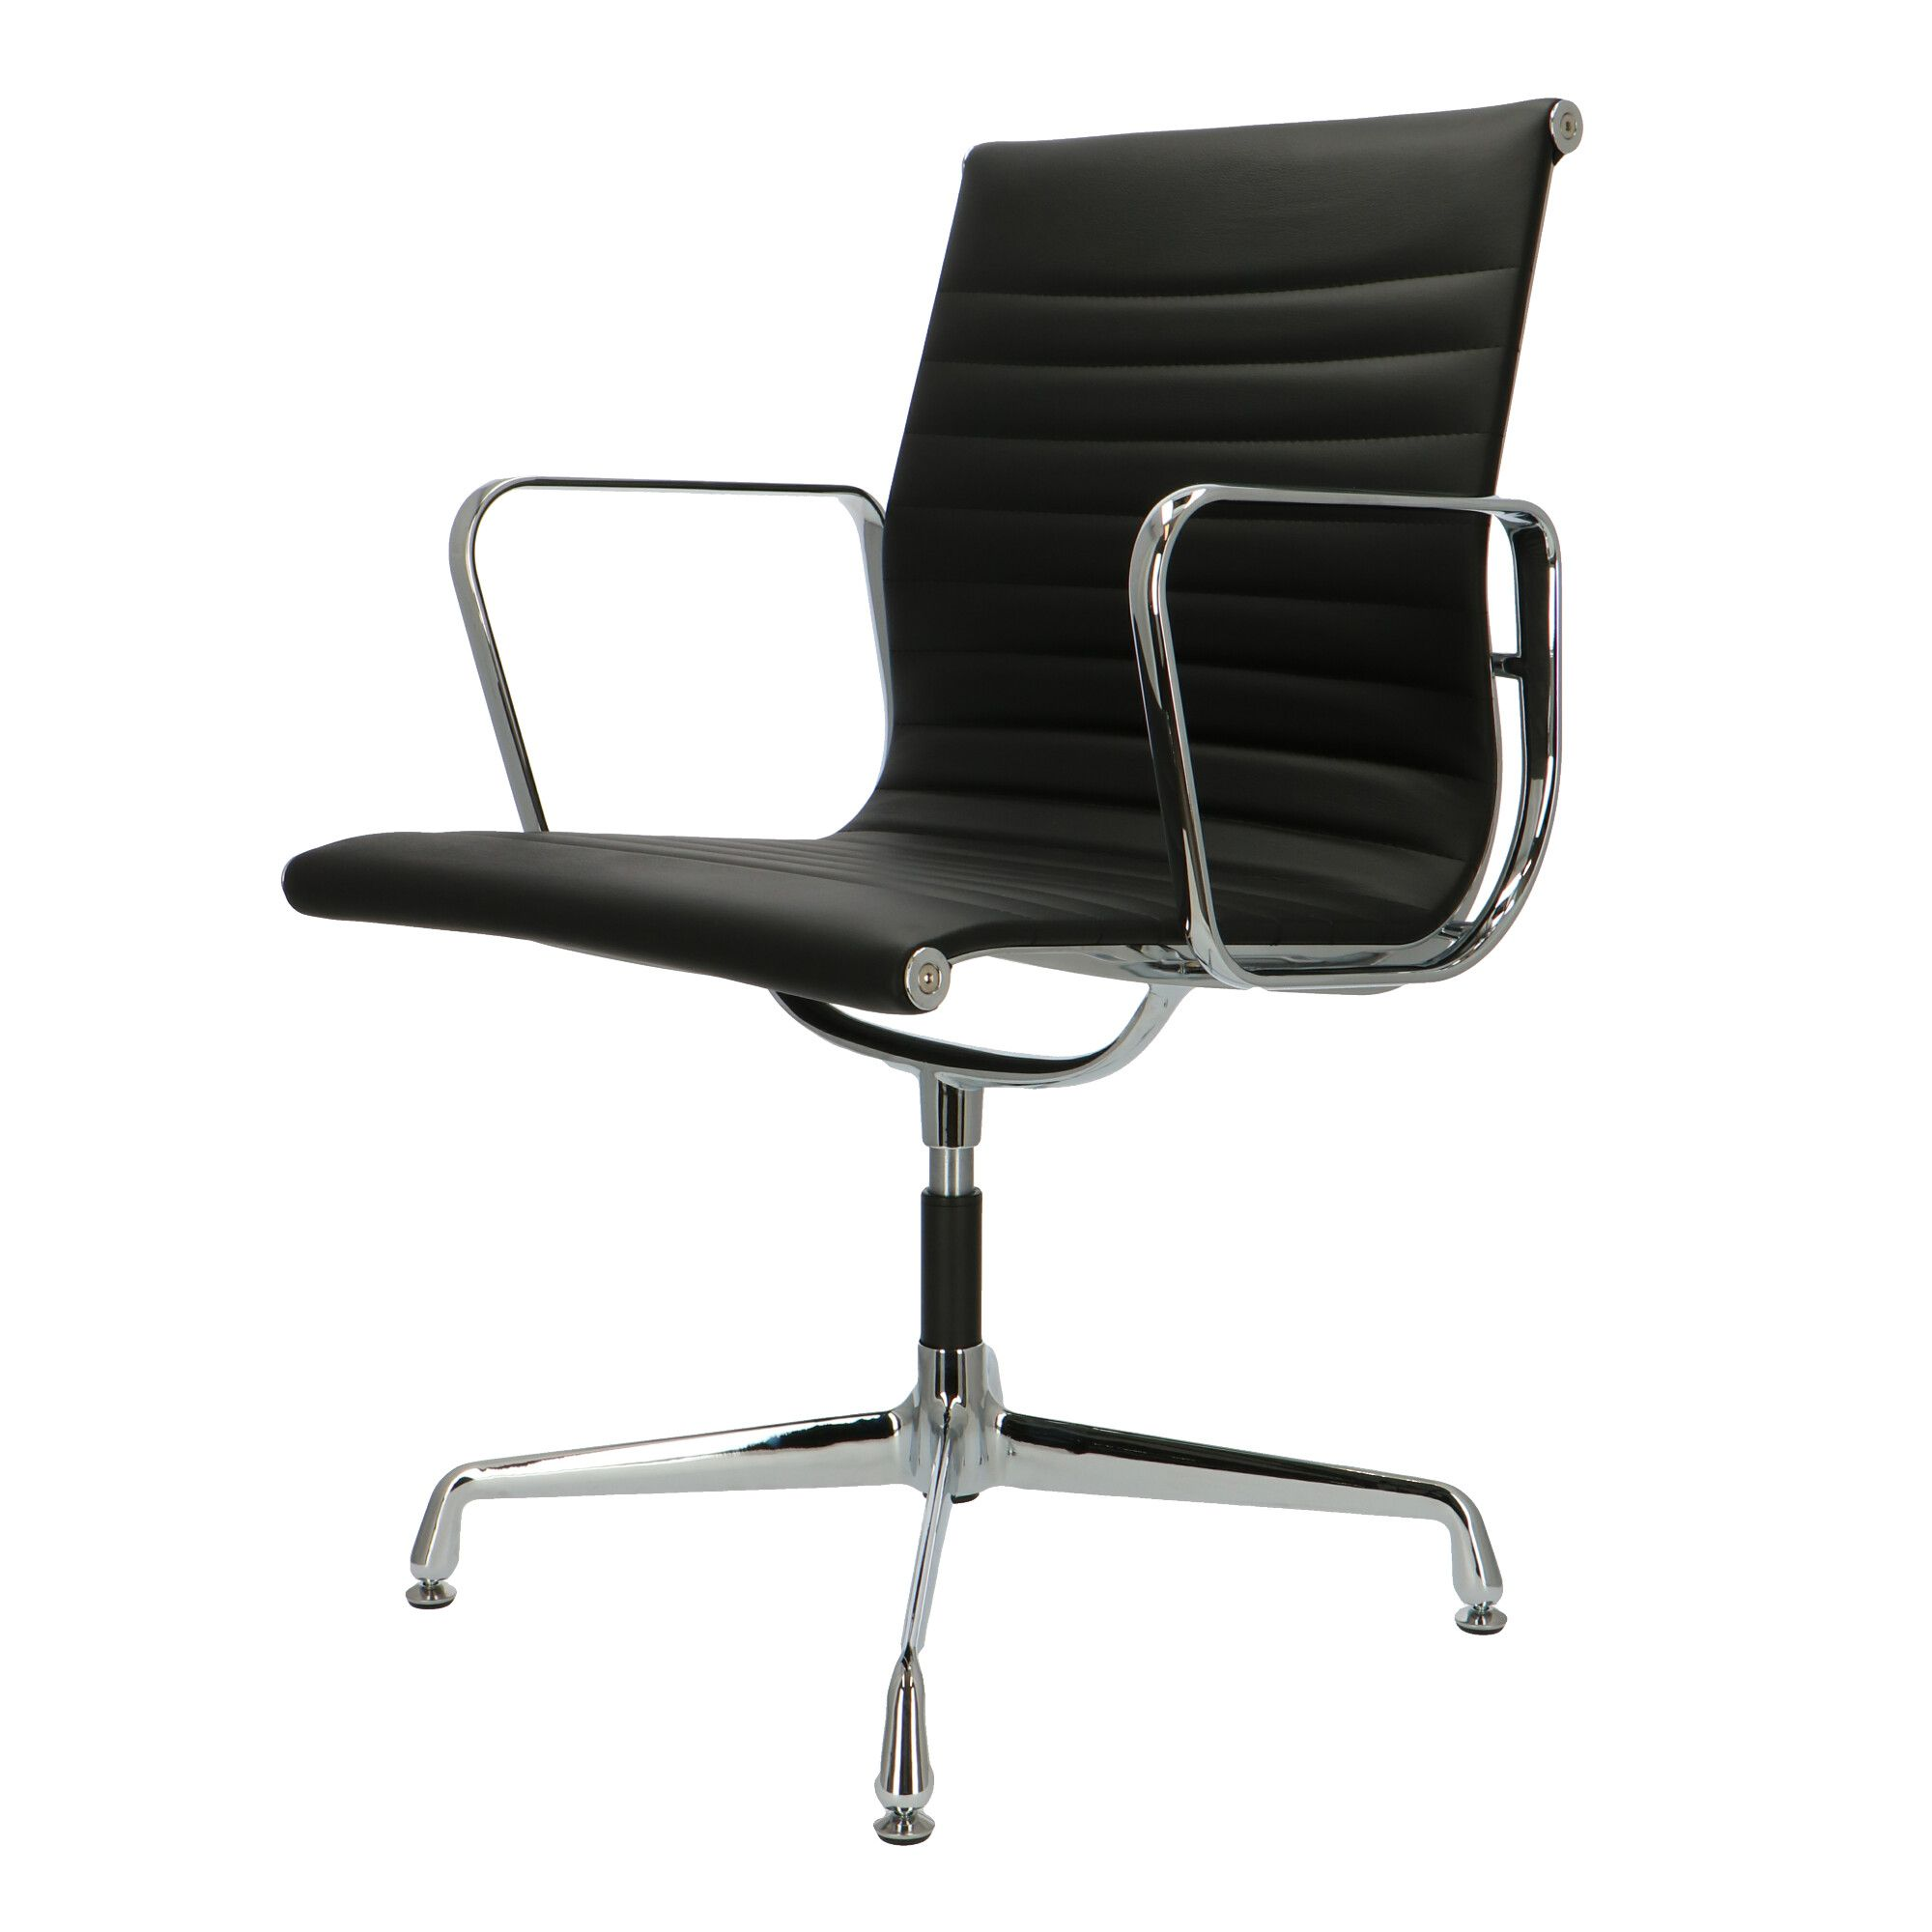 Eames 108 Eames Office Chair Ea 108 Black Leather Popfurniture